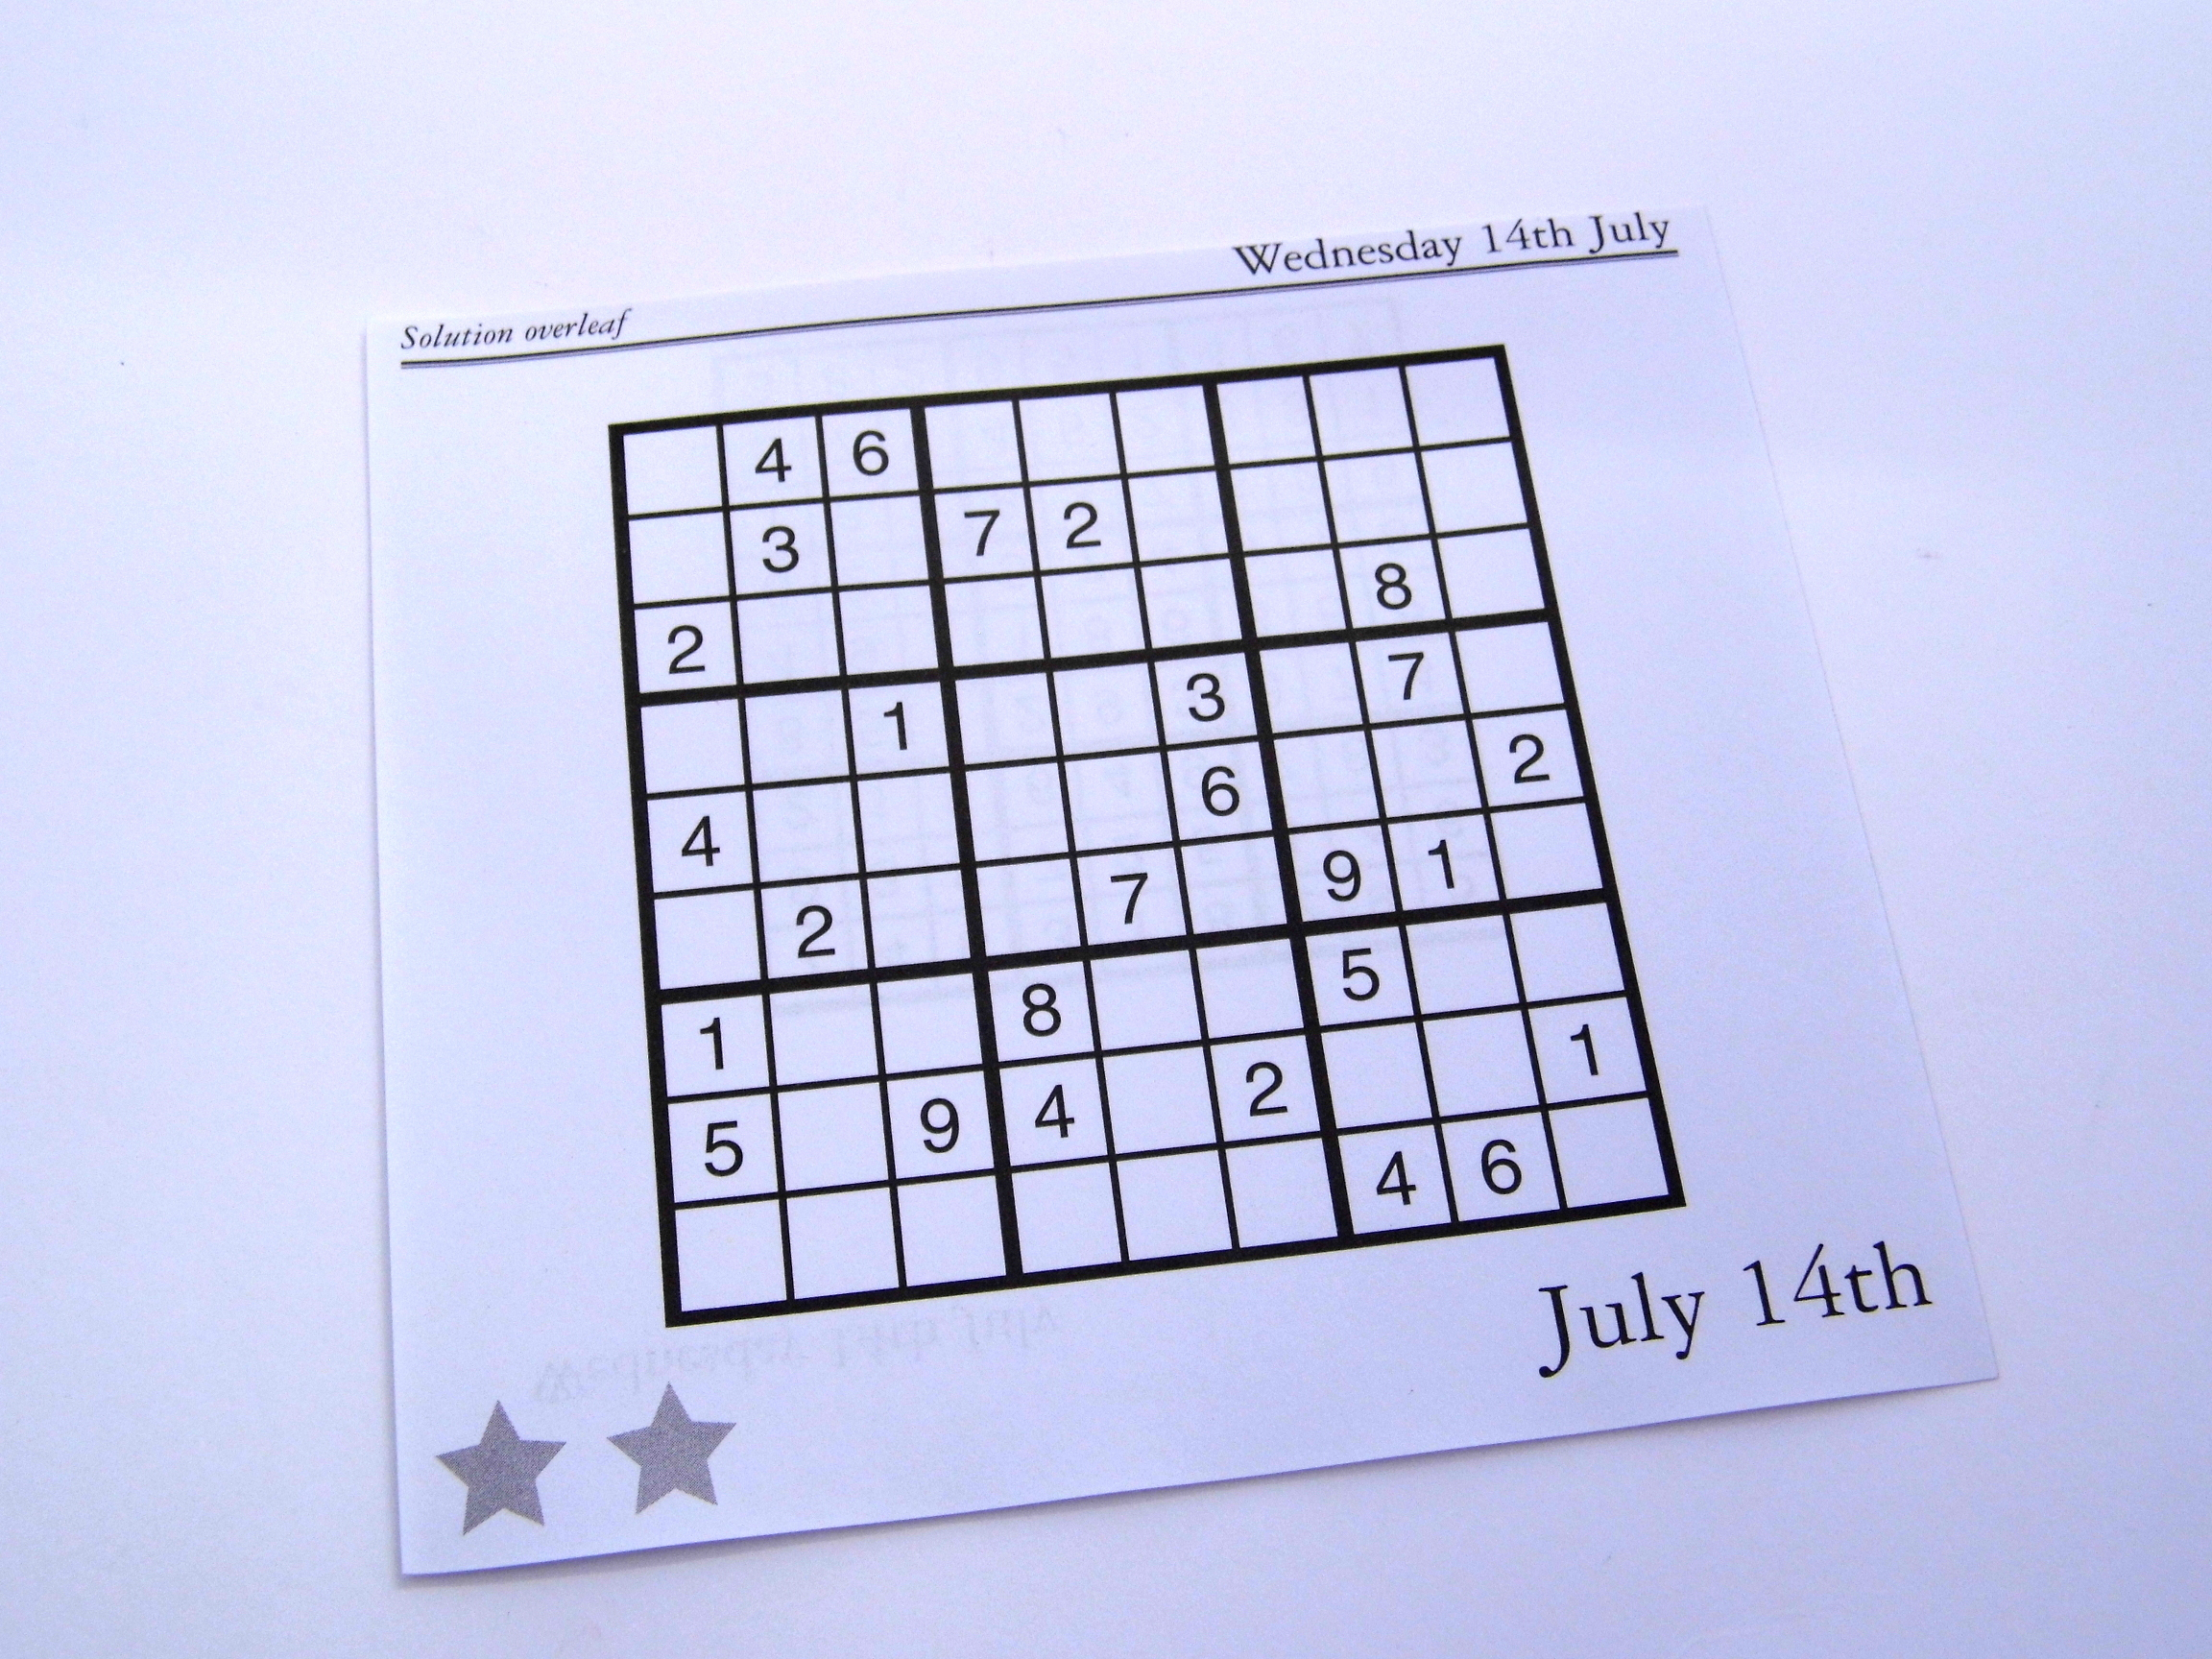 Archive Evil Puzzles – Free Sudoku Puzzles - Free Printable Sudoku 6 Per Page